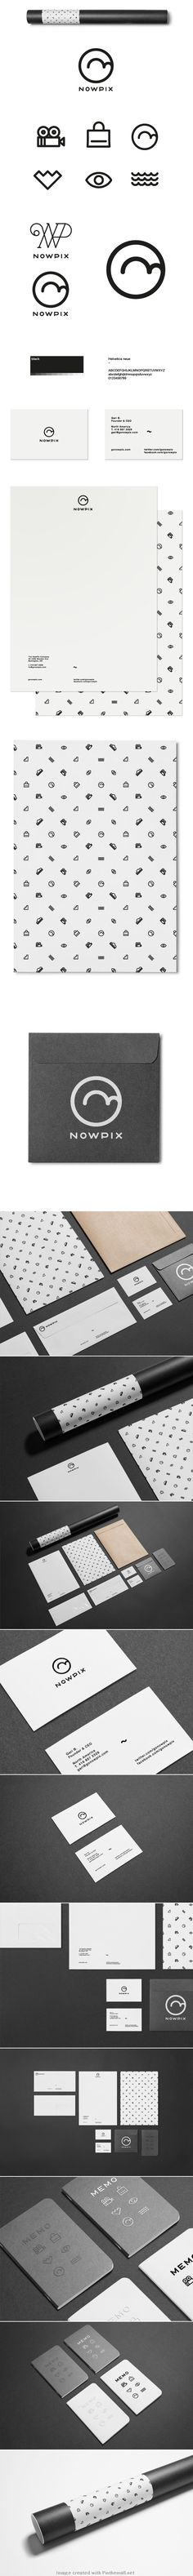 The guys from Nowpix asked me to create a branding identity and a website layout for their new project. Corporate Design, Brand Identity Design, Corporate Identity, Graphic Design Typography, Visual Identity, Branding Design, Identity Branding, Brochure Design, Packaging Design